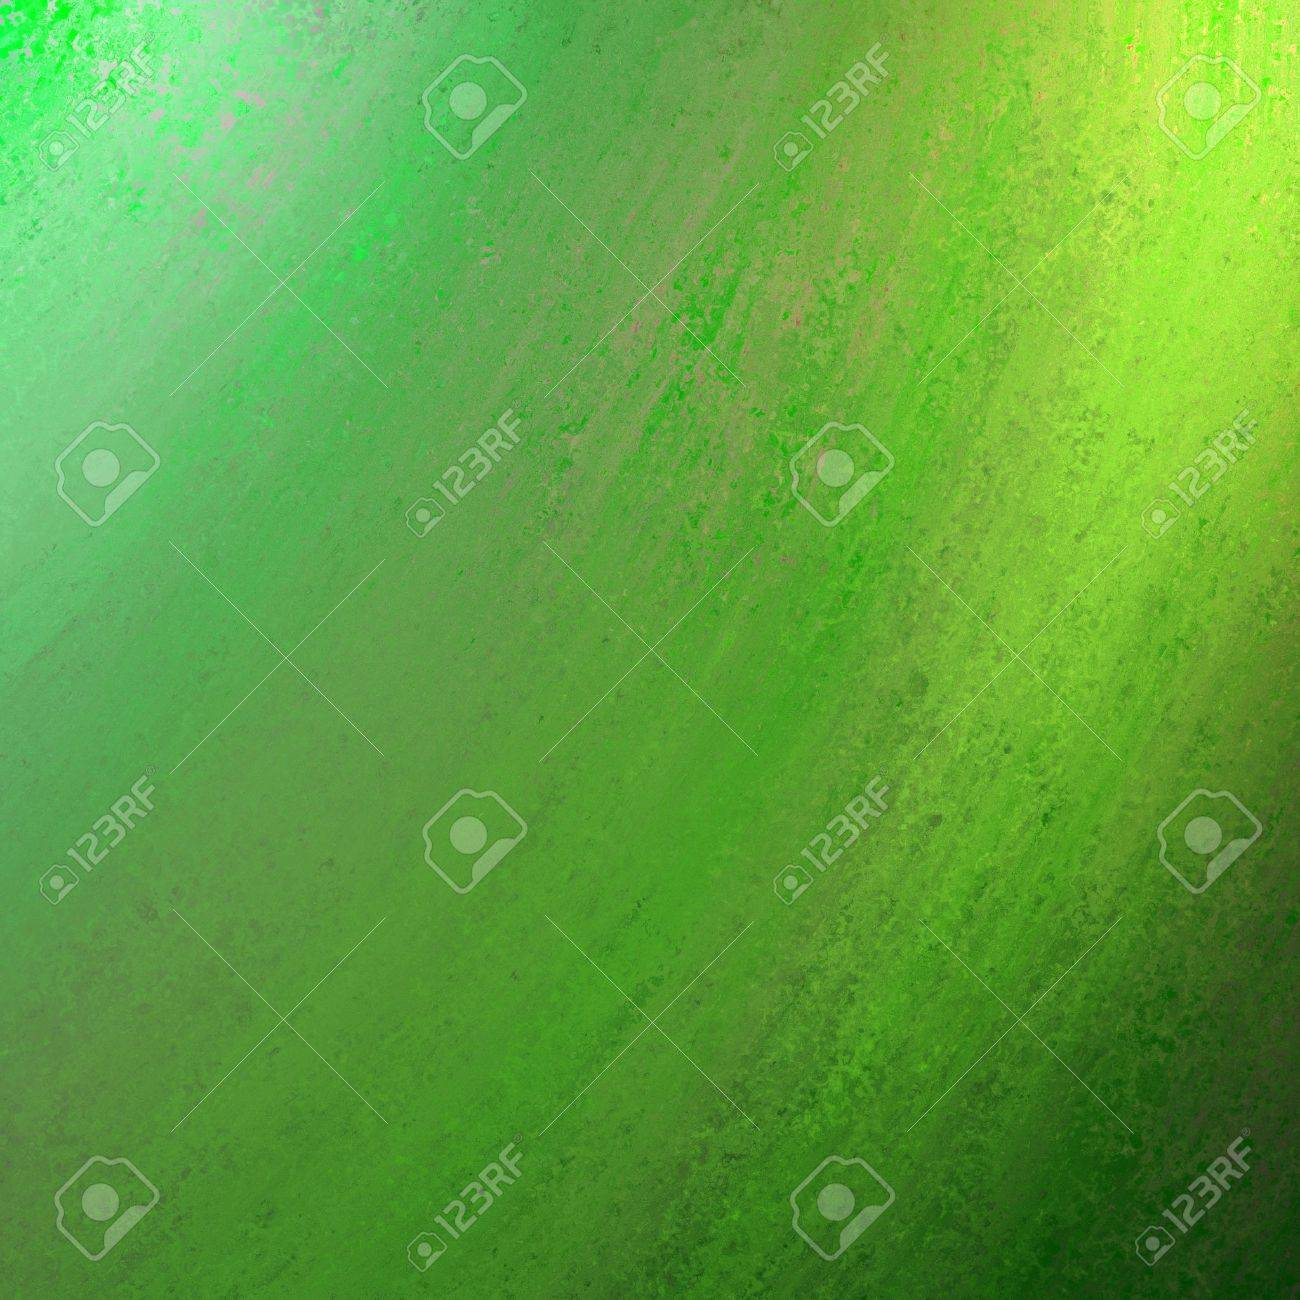 abstract green background design layout with vintage grunge background texture Stock Photo - 14793033